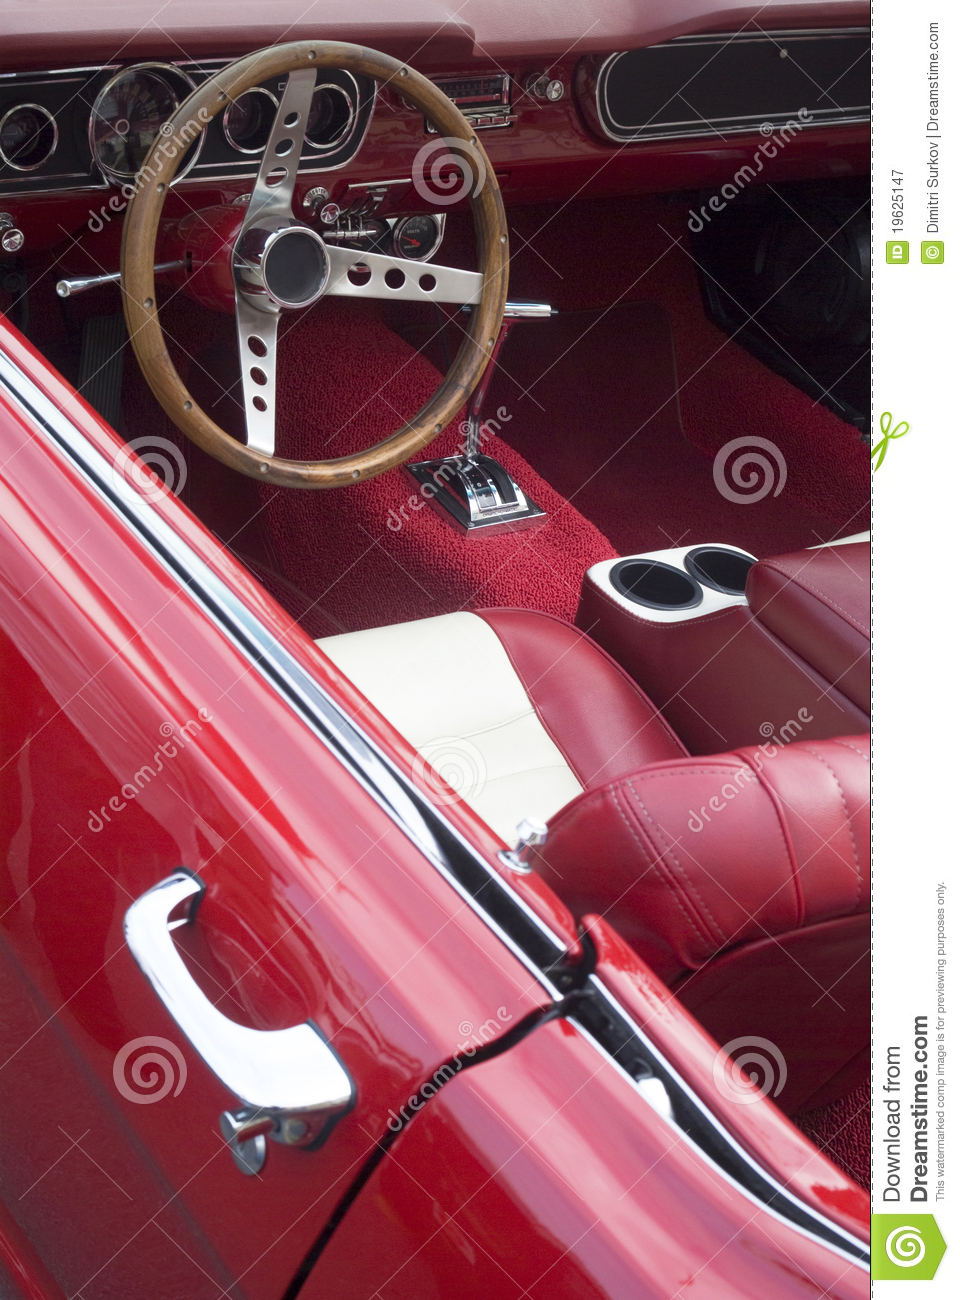 interior of a vintage car royalty free stock photography image 19625147. Black Bedroom Furniture Sets. Home Design Ideas